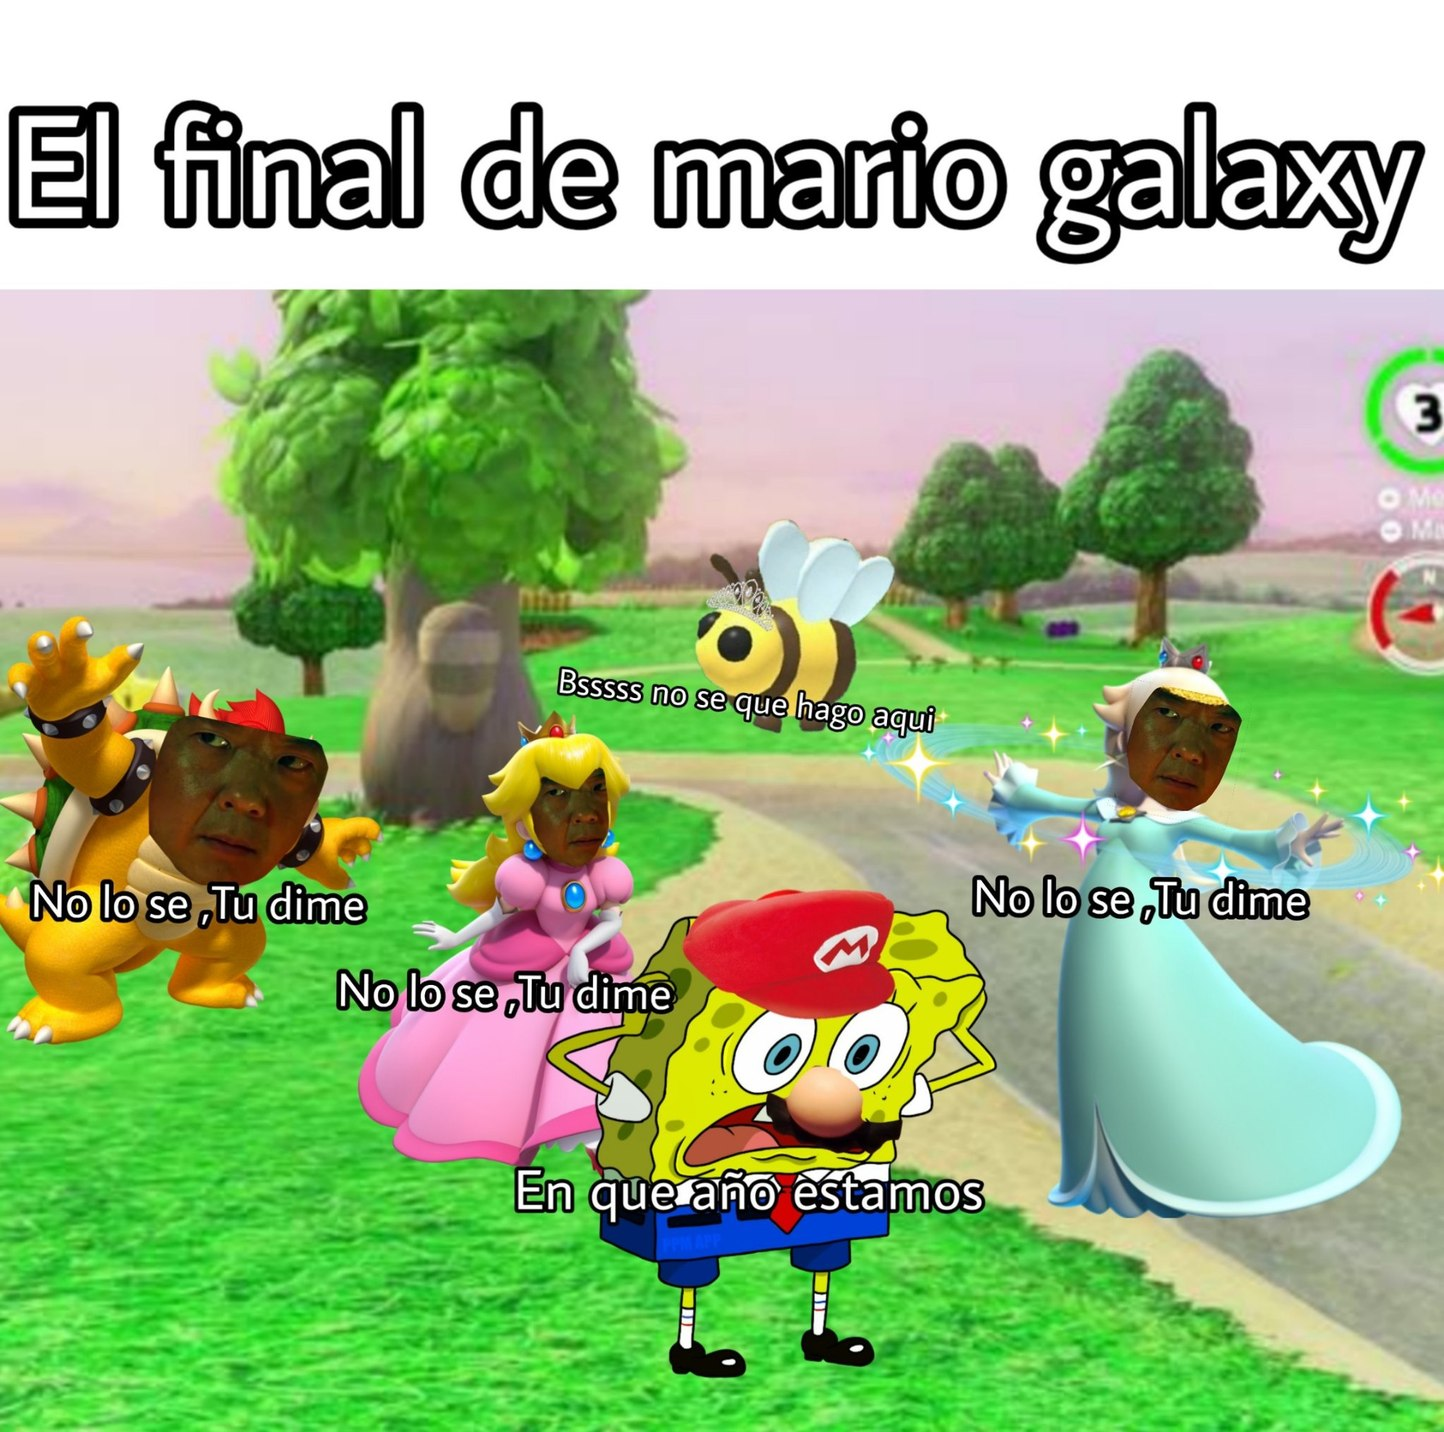 El final de mario galaxy - meme